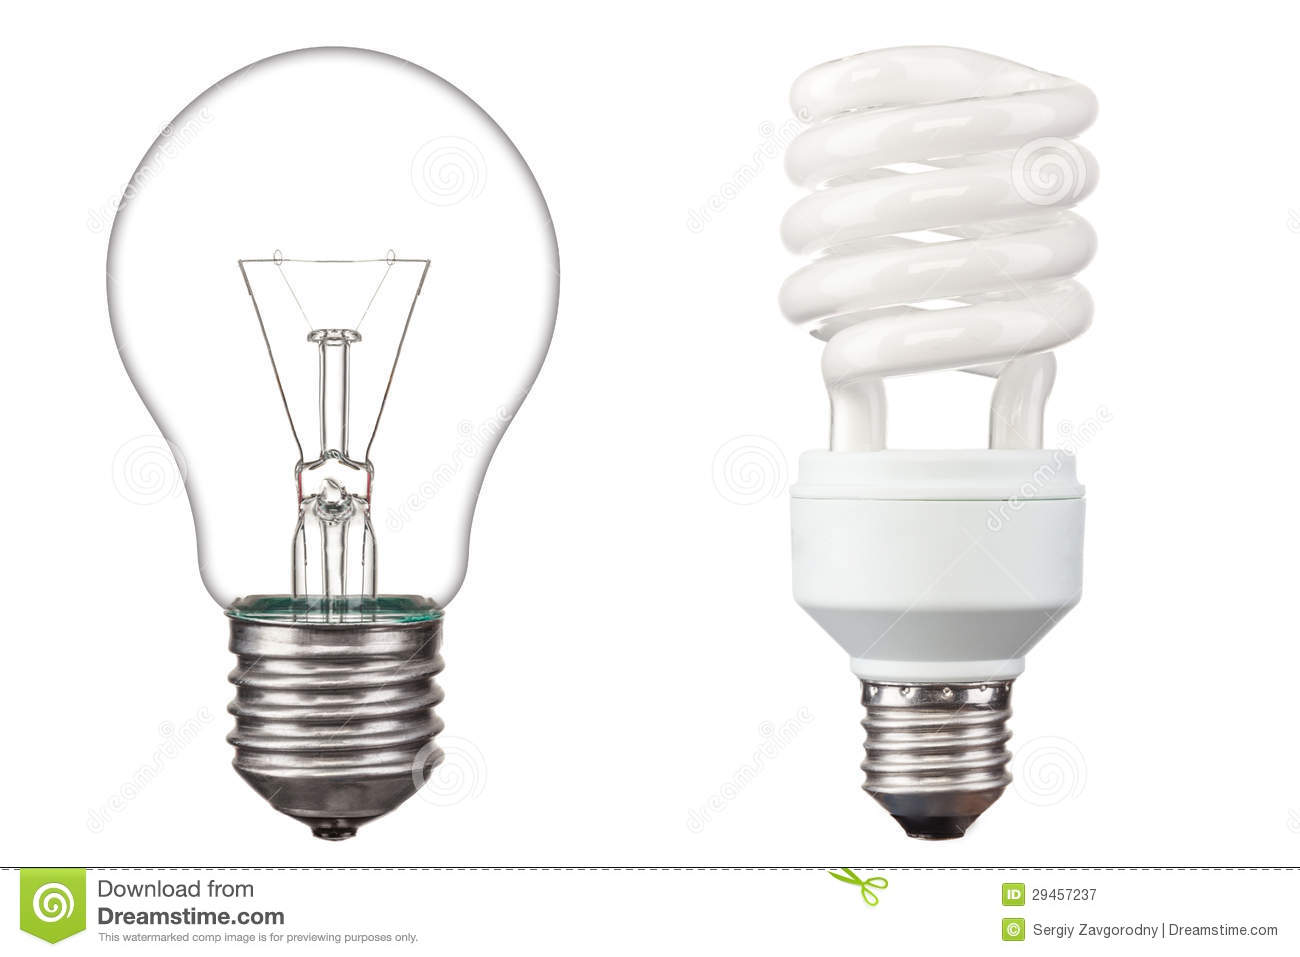 Energy saving light bulbs royalty free stock photography image 29457237 Efficient light bulbs